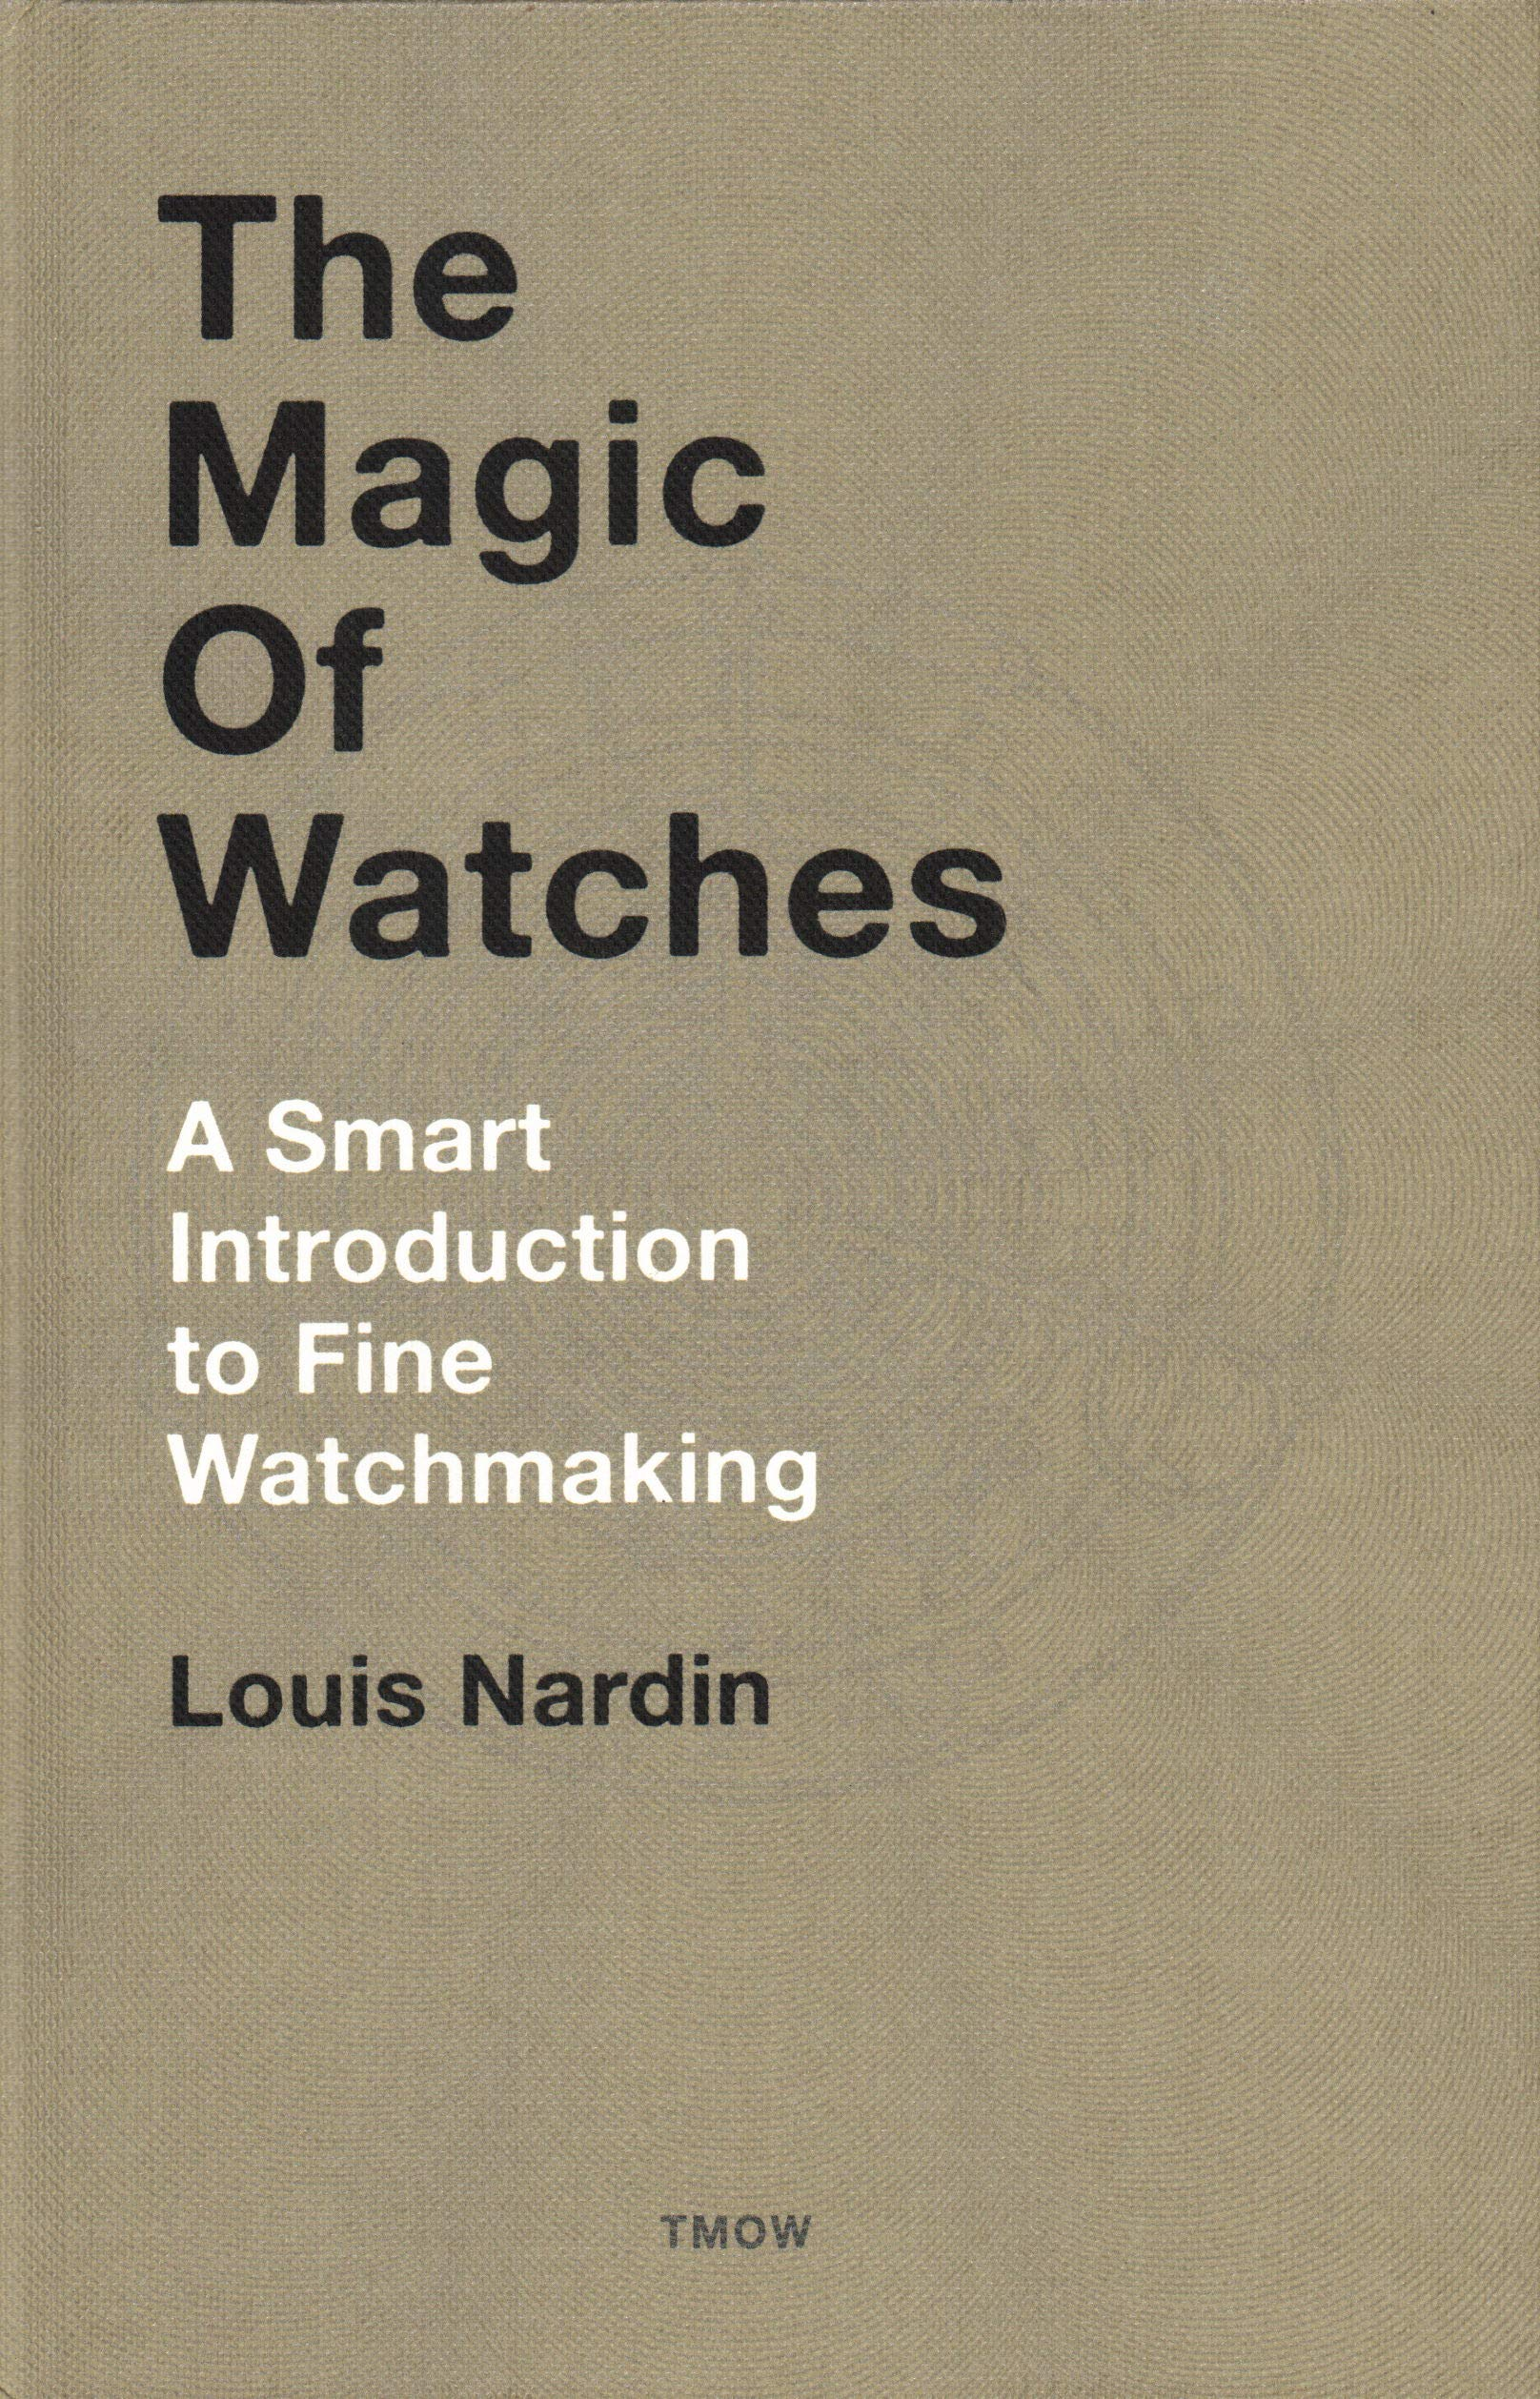 The Magic of Watches: A Smart Introduction to Fine Watchmaking